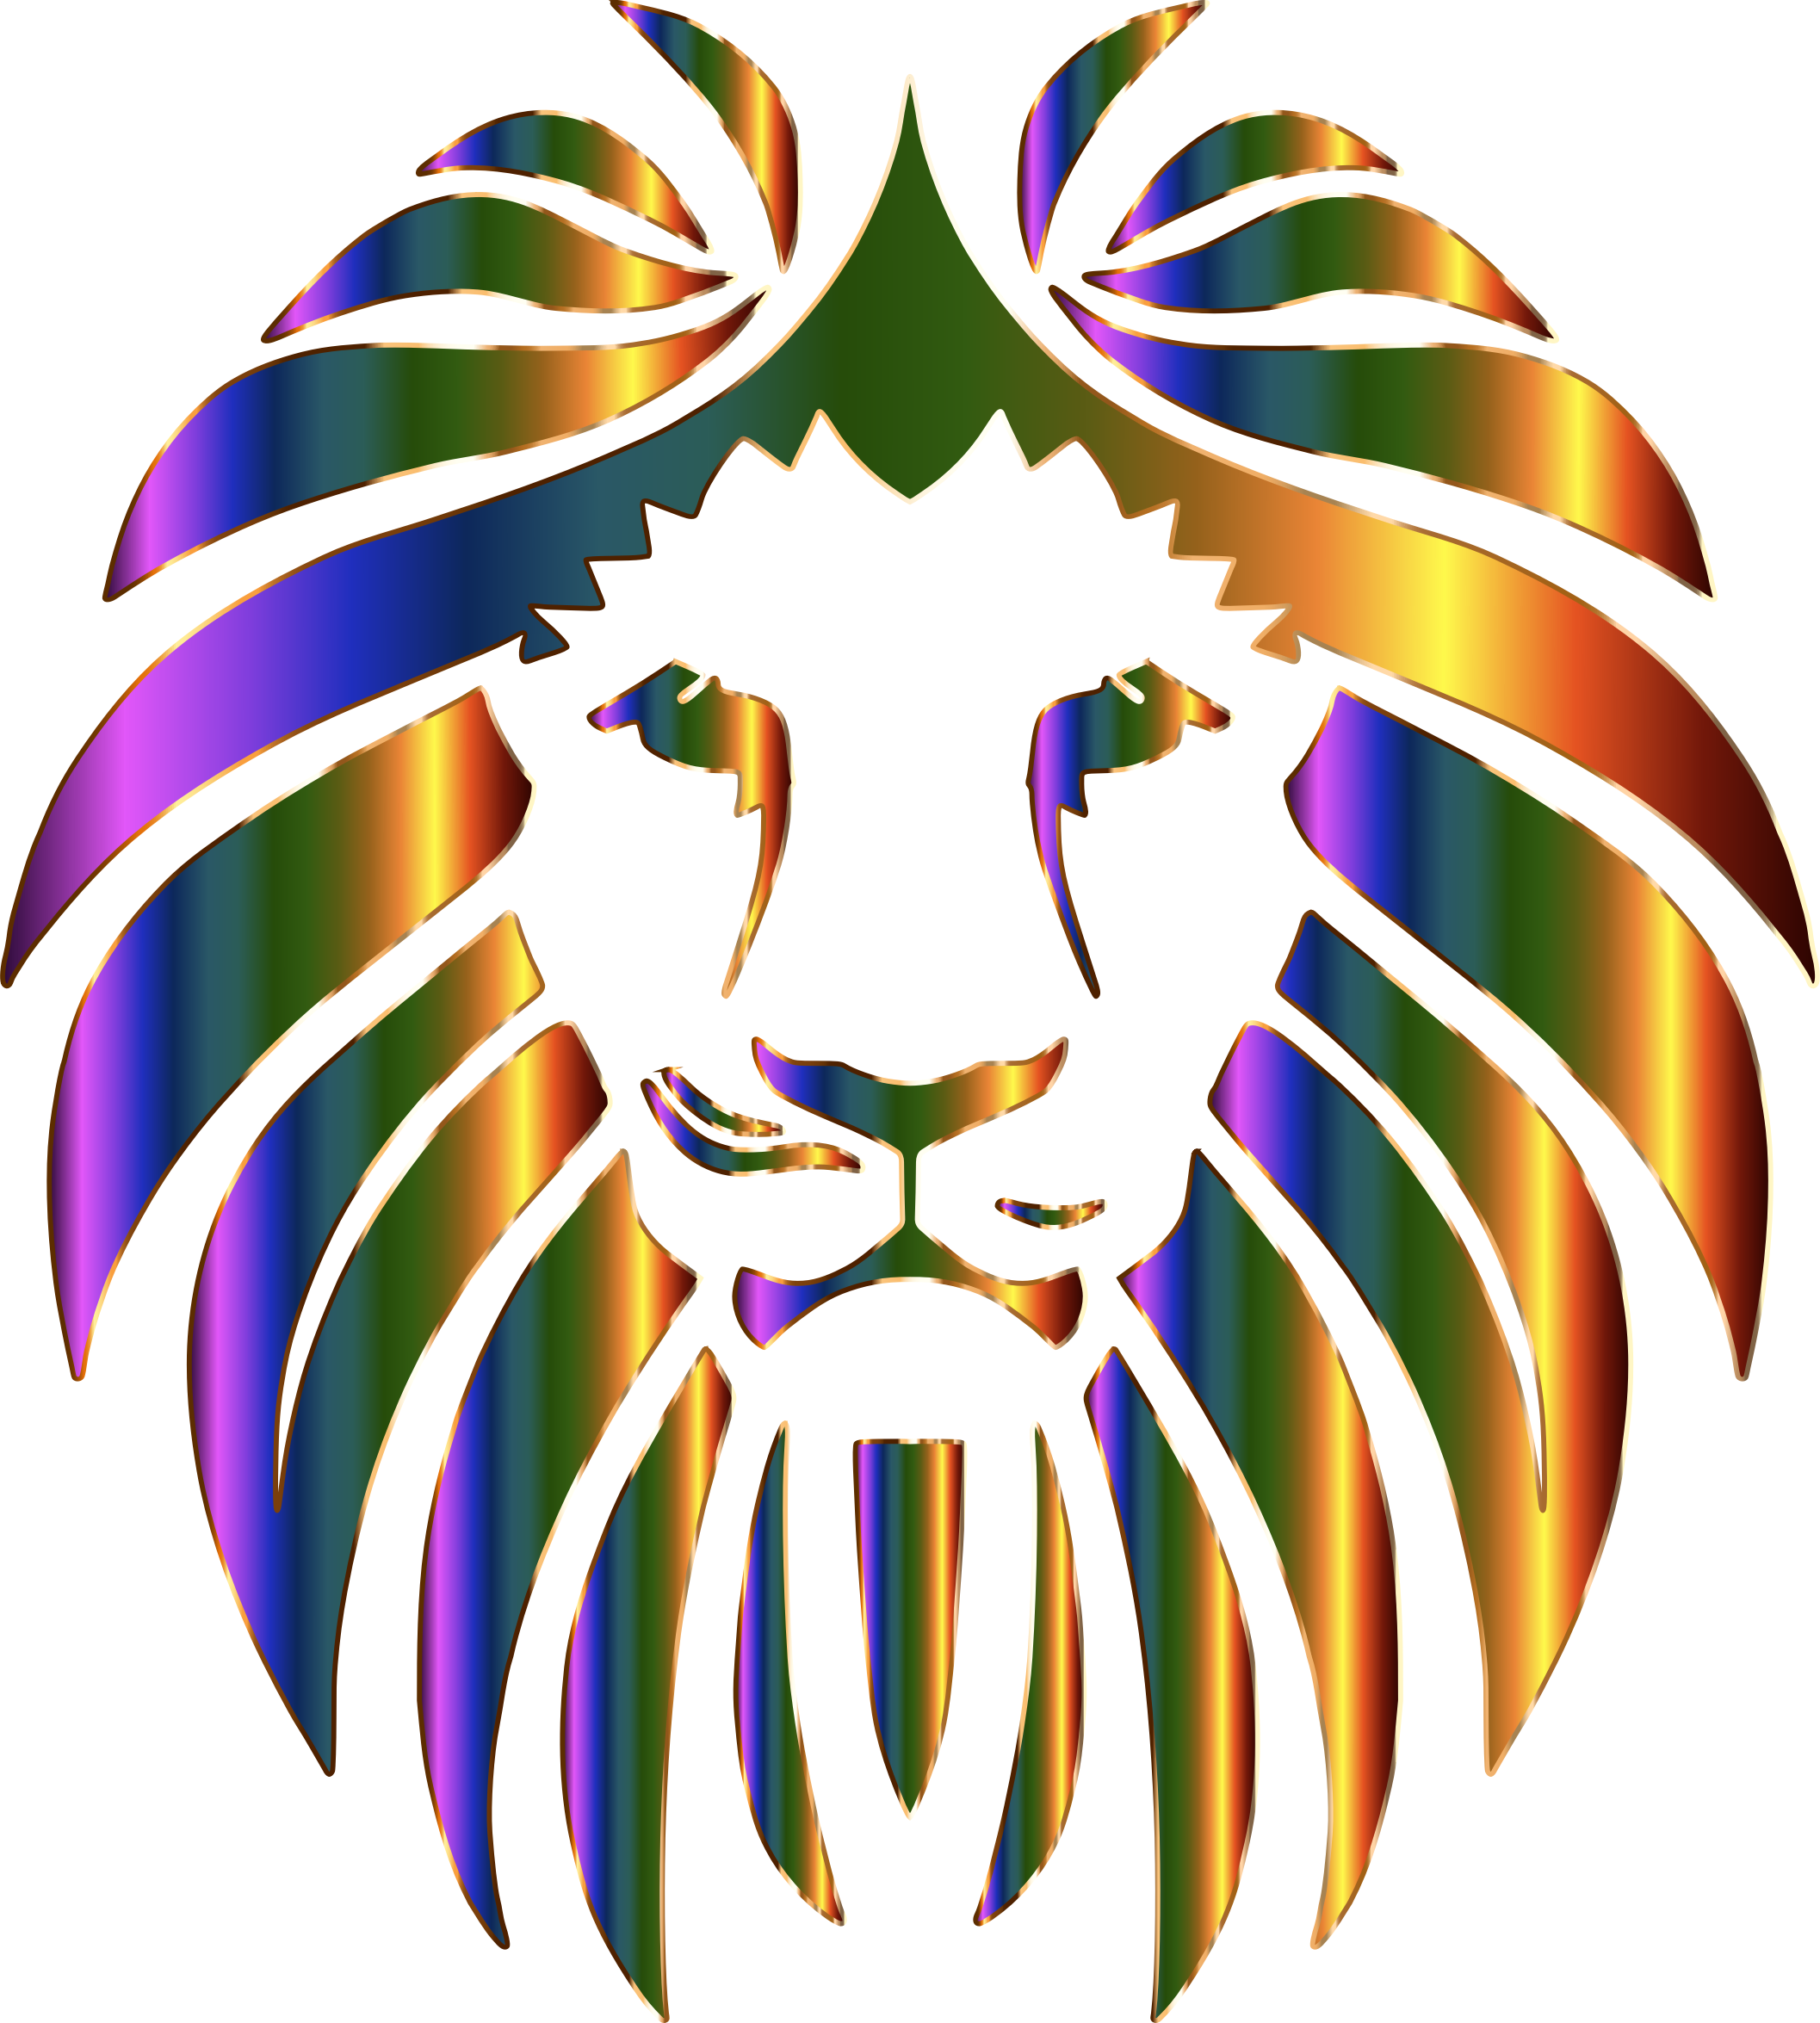 Prismatic Lion No Background by GDJ